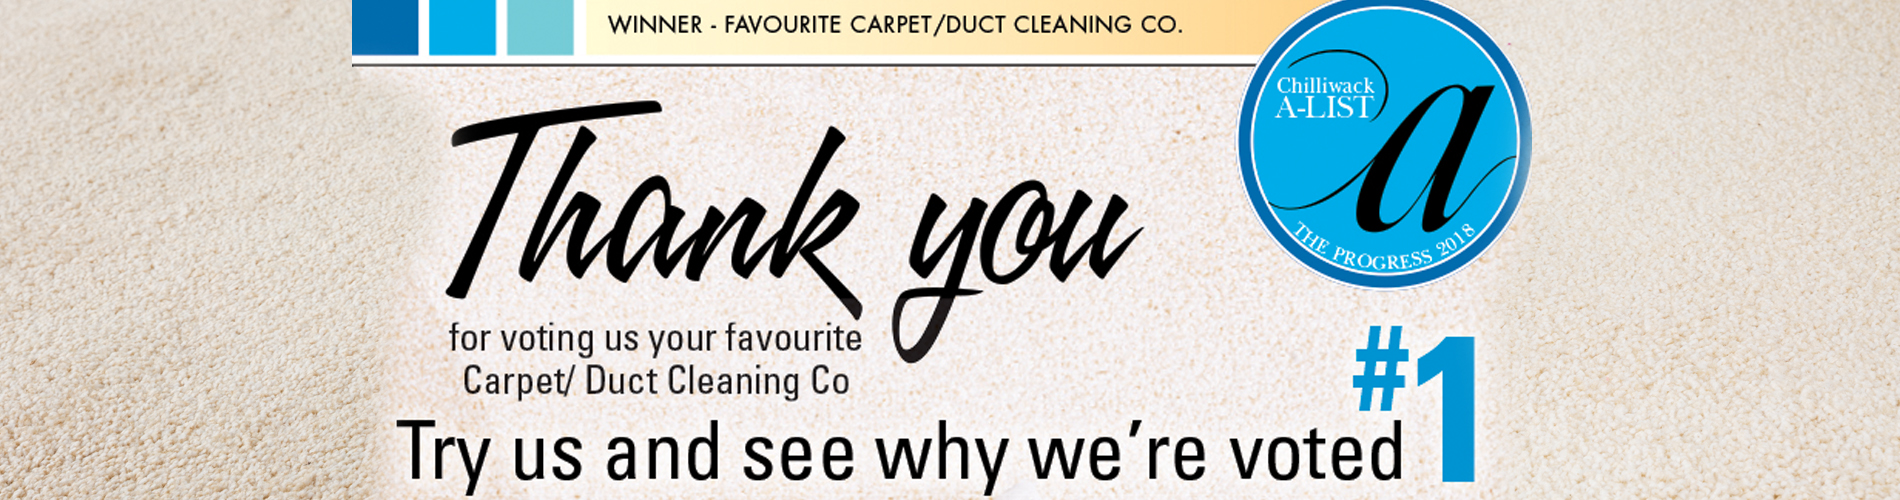 Thank You for voting us #1 carpet and duct cleaners